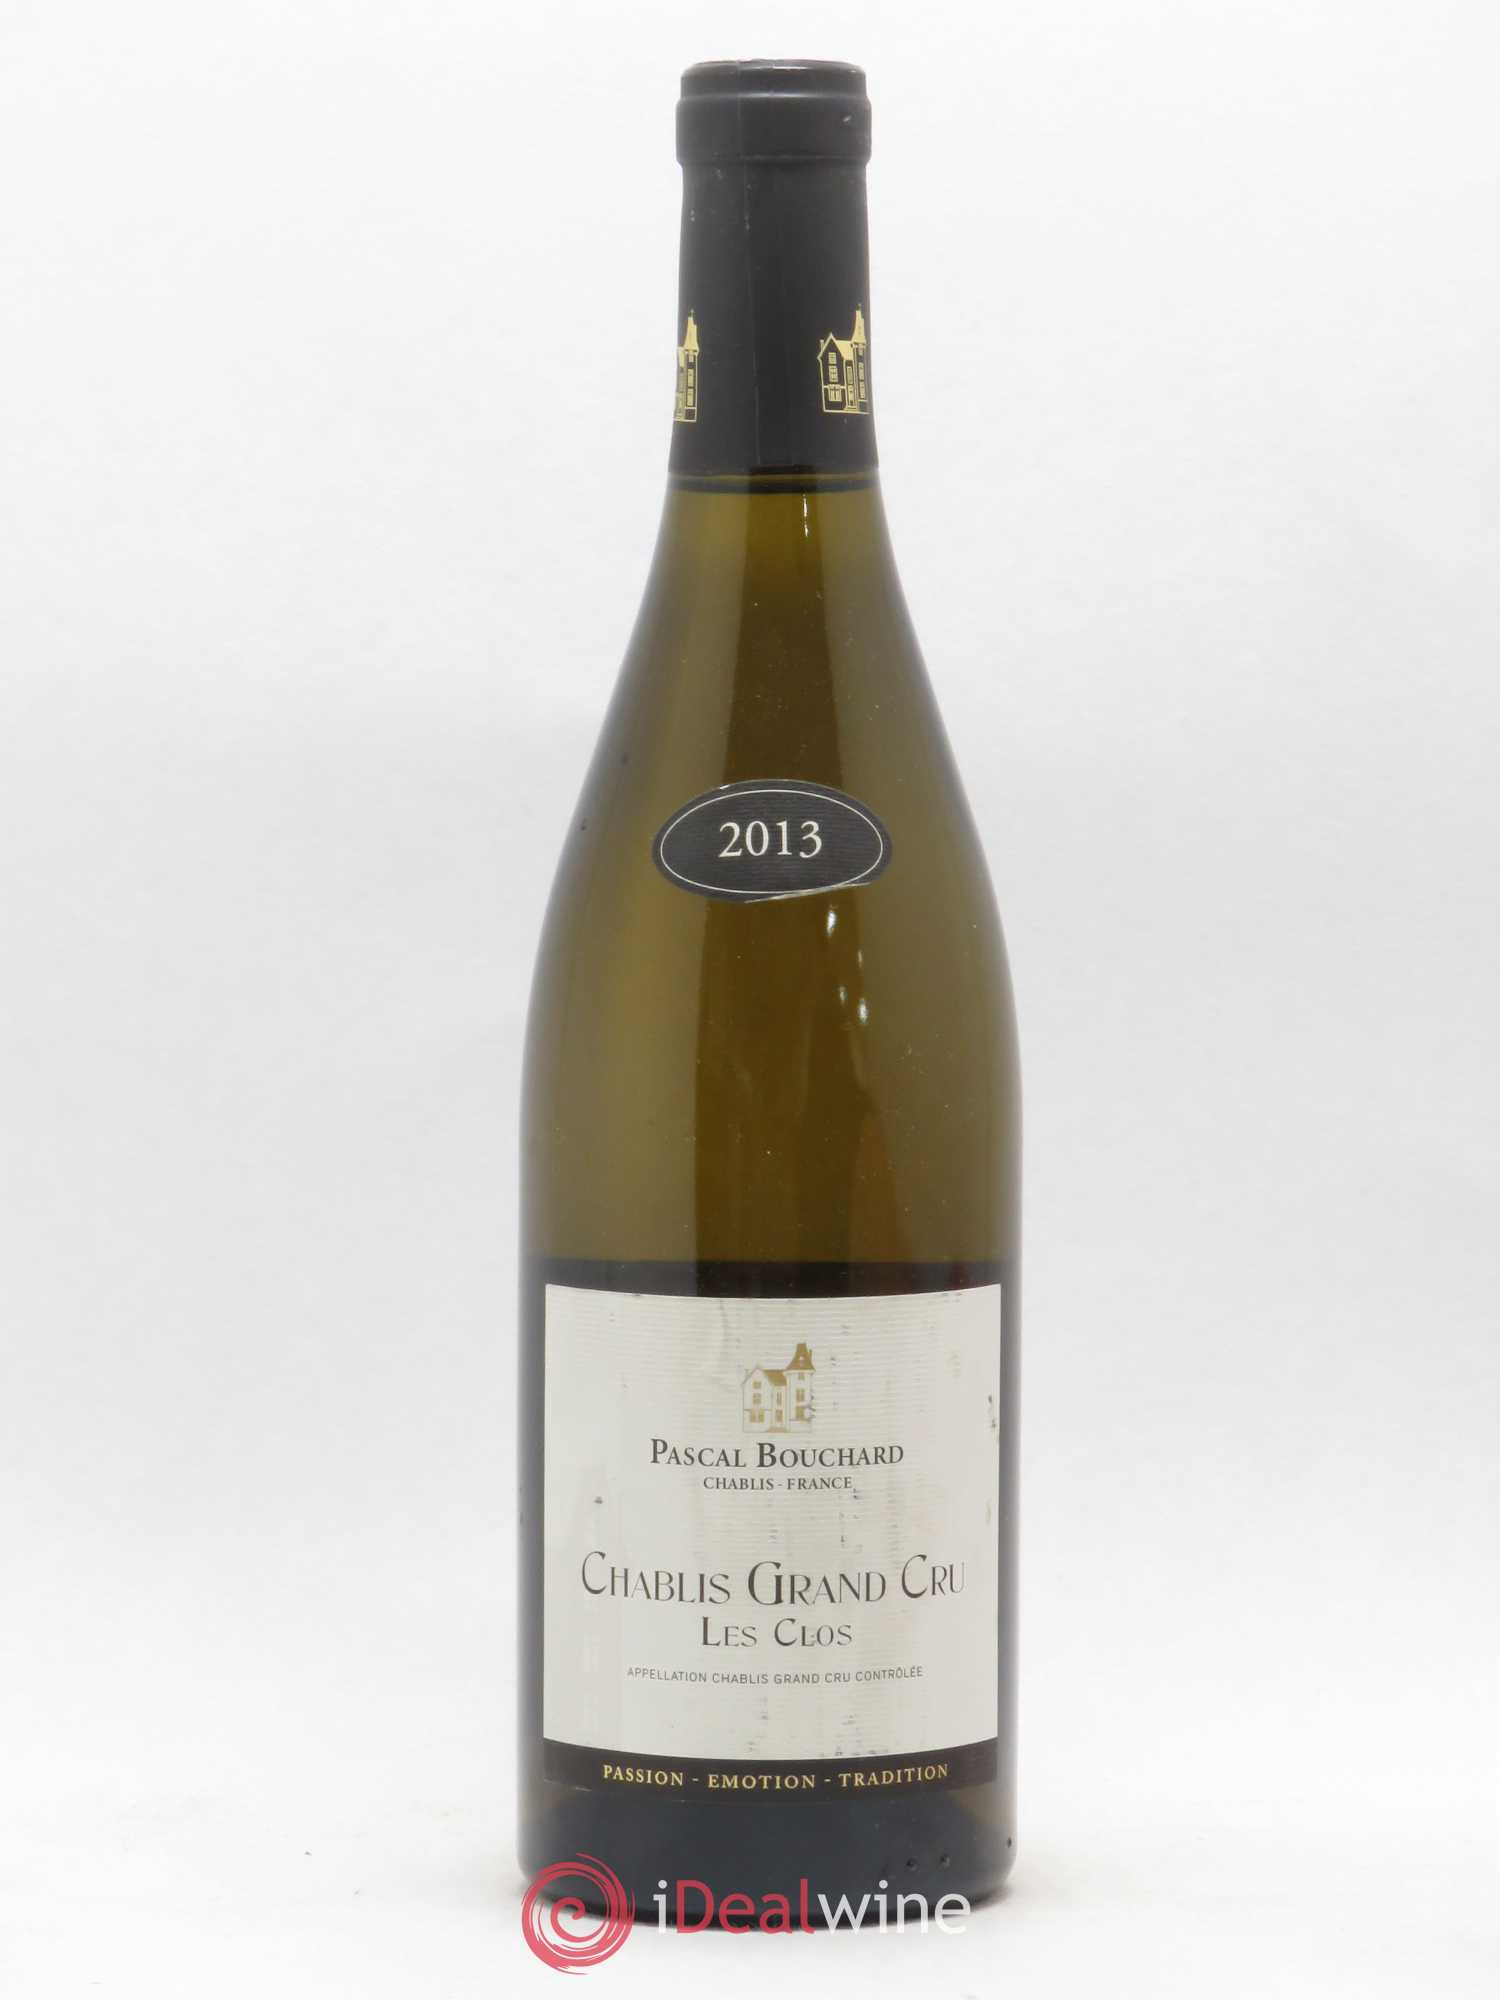 Chablis Grand Cru Les Clos Pascal Bouchard 2013 - Lot of 1 Bottle